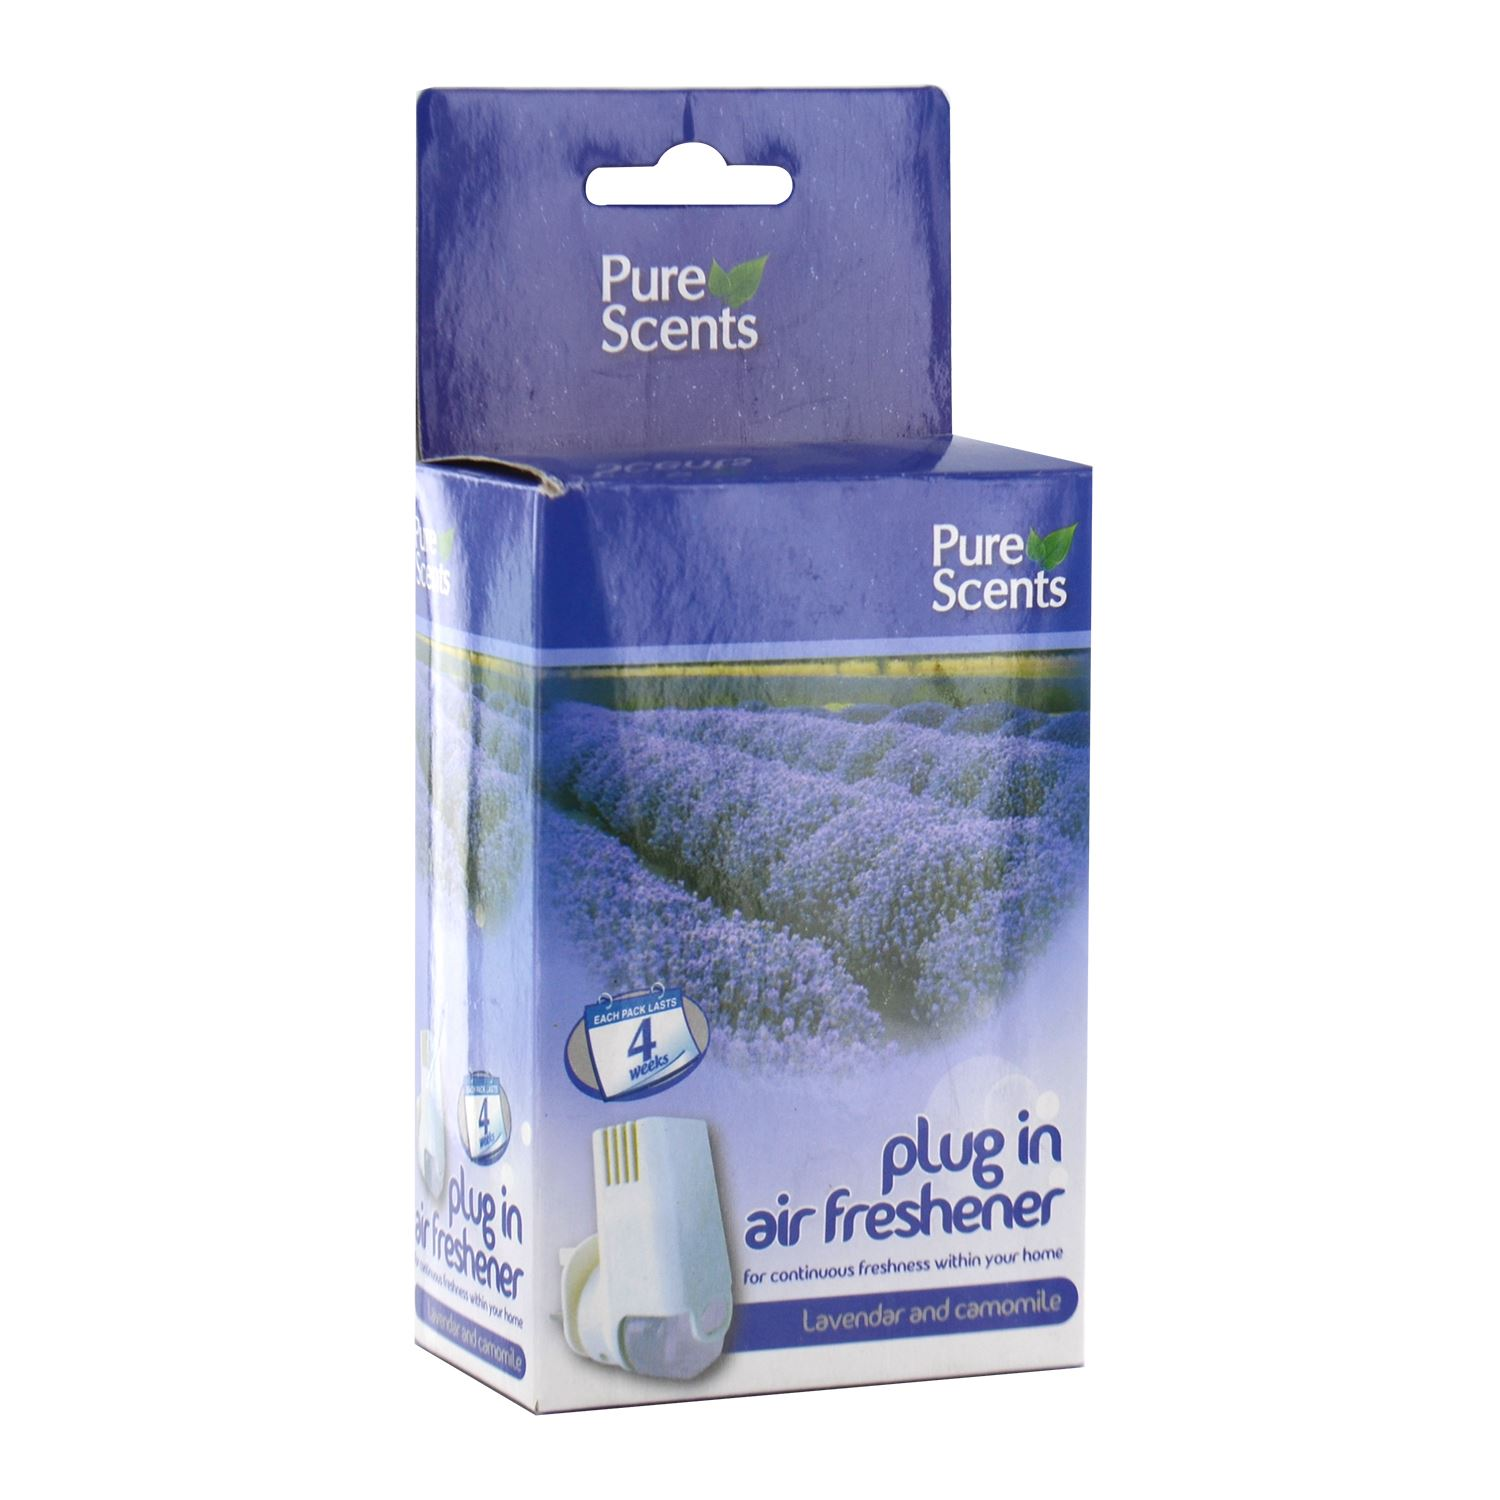 New refillable plug in air freshener fragrance scented for Air freshener plug in